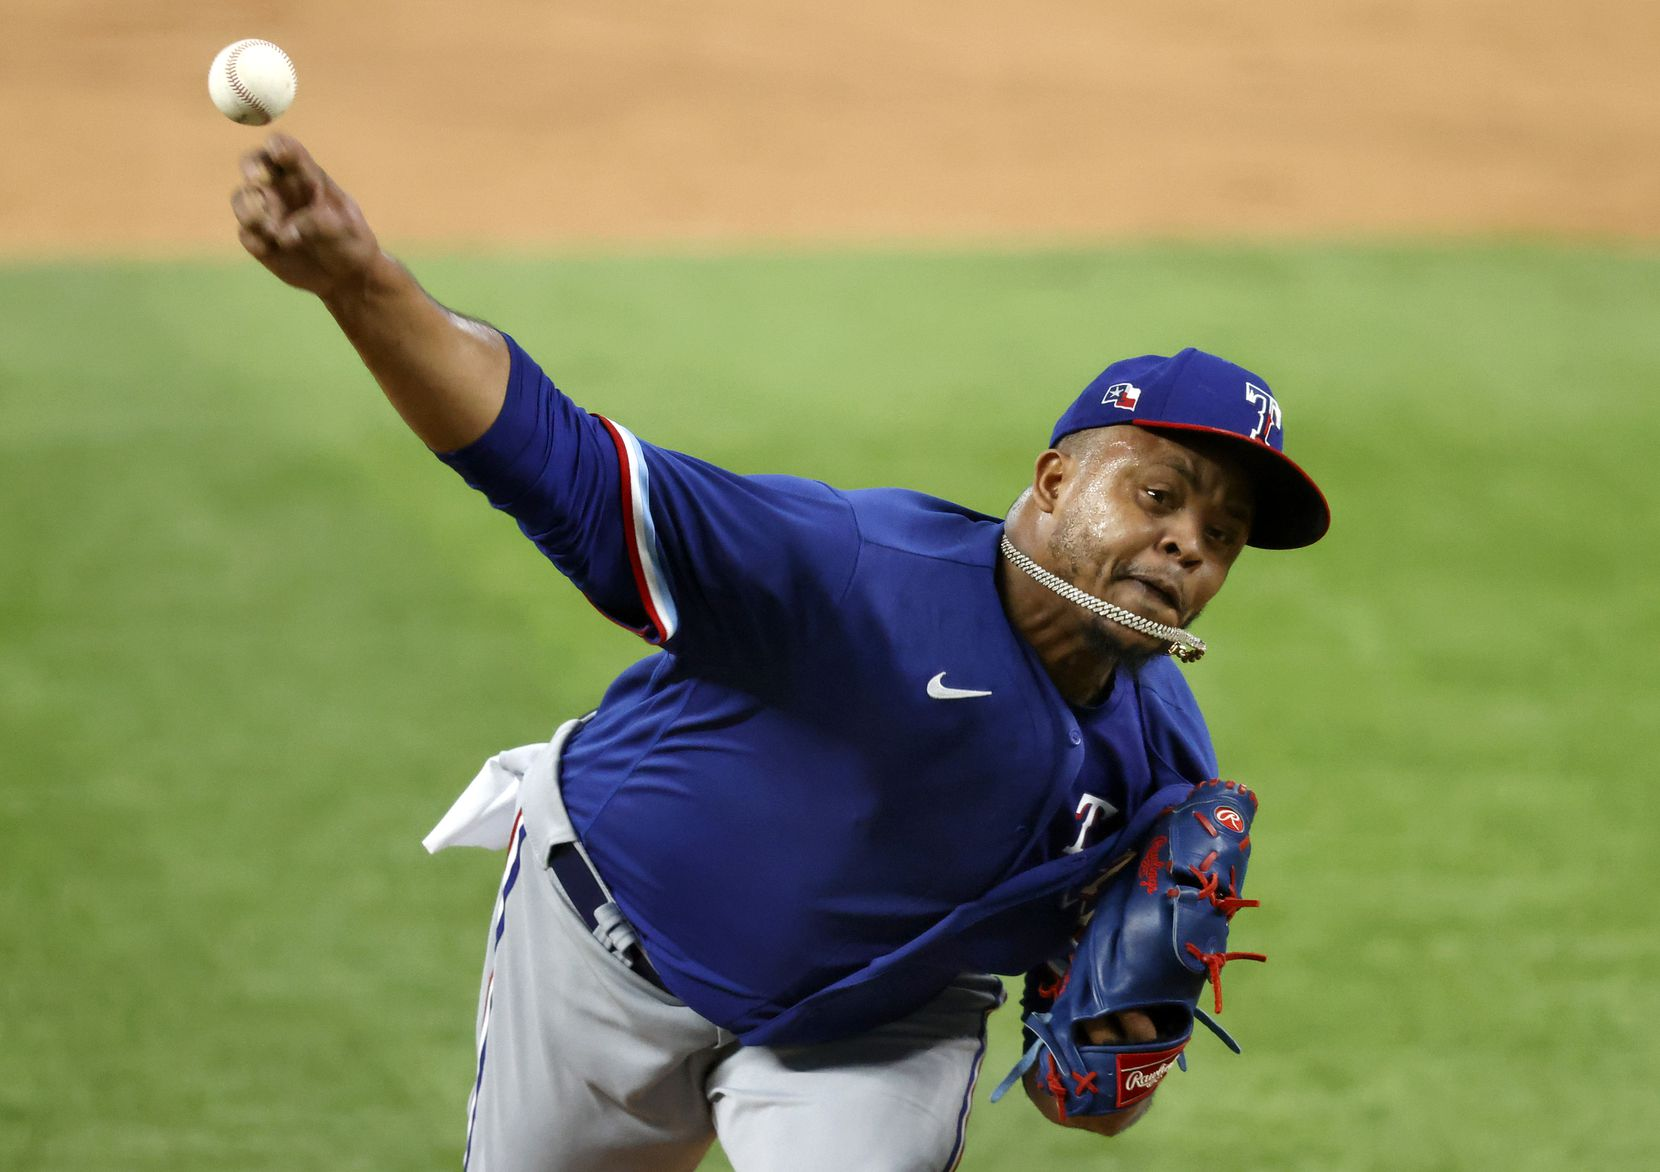 Texas Rangers pitcher Edinson Vólquez throws in relief during an intrasquad game at Summer Camp inside Globe Life Field in Arlington, Texas, Friday, July 10, 2020. (Tom Fox/The Dallas Morning News)